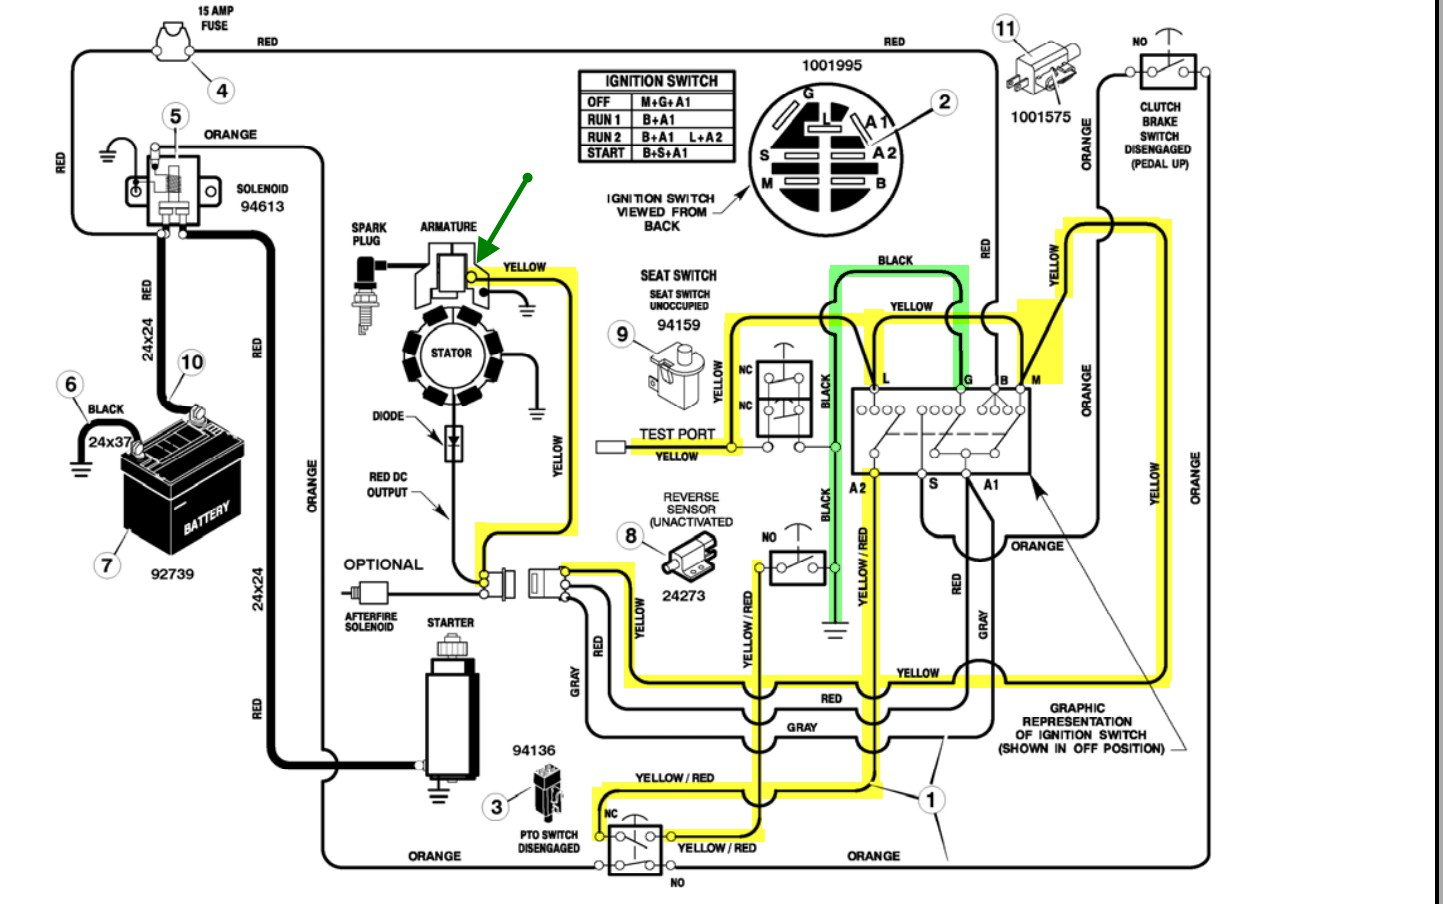 Briggs And Stratton Ignition Coil Wiring Diagram | Wiring Diagram - Briggs And Stratton Coil Wiring Diagram